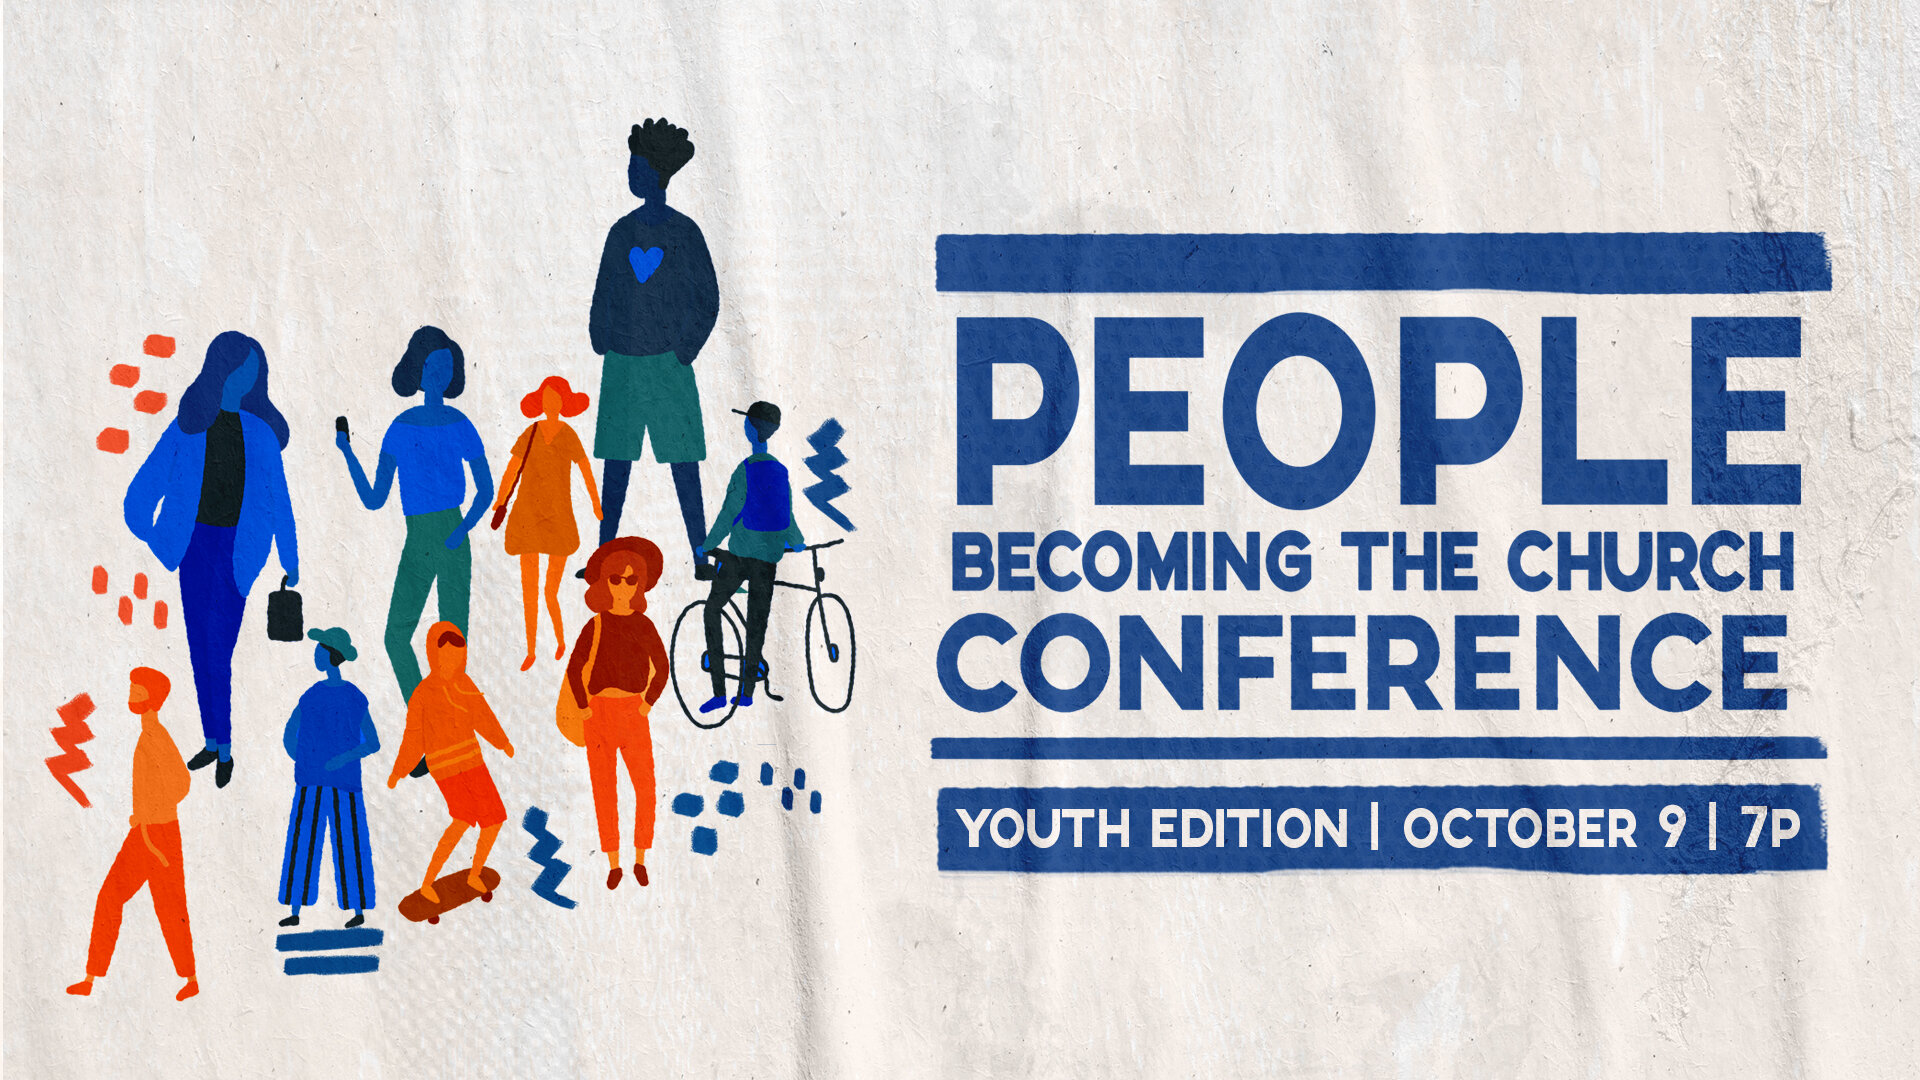 OCTOBER 9PEOPLE BECOMING THE CHURCH CONFERENCE   YOUTH EDITION - 7P - 8:30P   FREE ADMISSIONAN EVENING DESIGNED TO INSPIRE AND EQUIP STUDENTS, ALONG WITH THEIR PARENTS, TO JOIN JESUS' MISSION IN ALL OF LIFE.